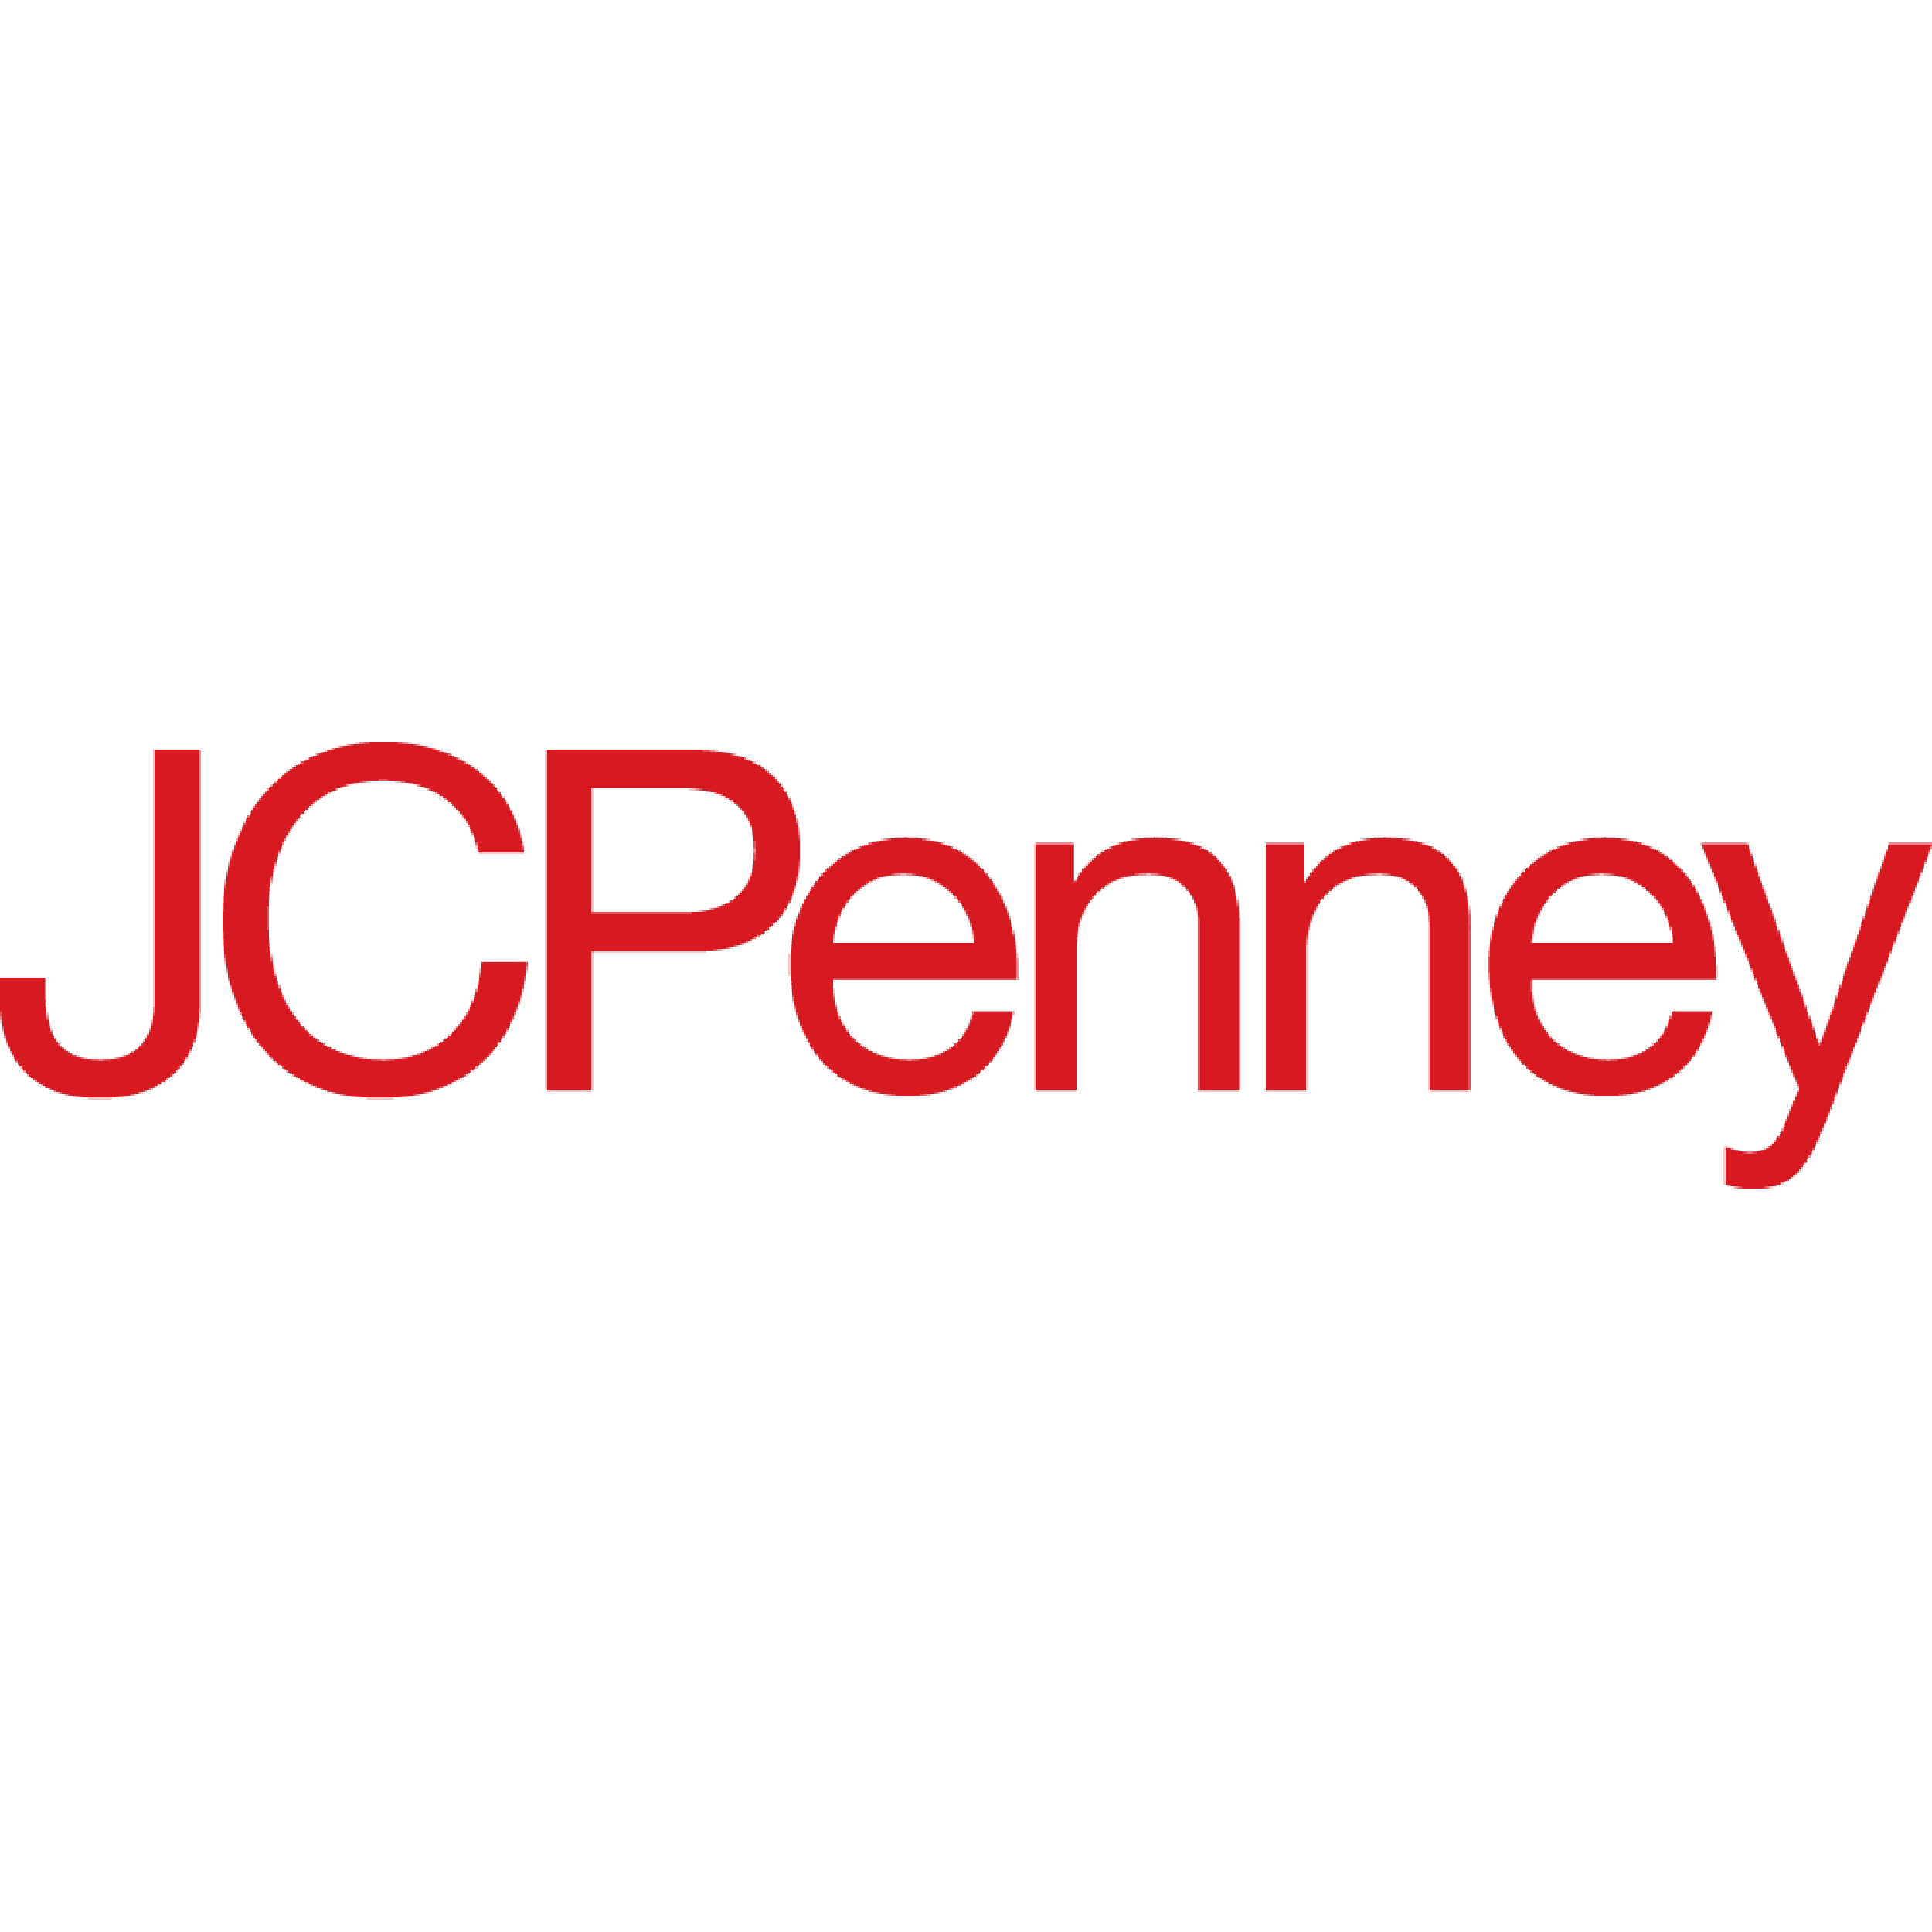 JCPenney - Topeka, KS - Department Stores